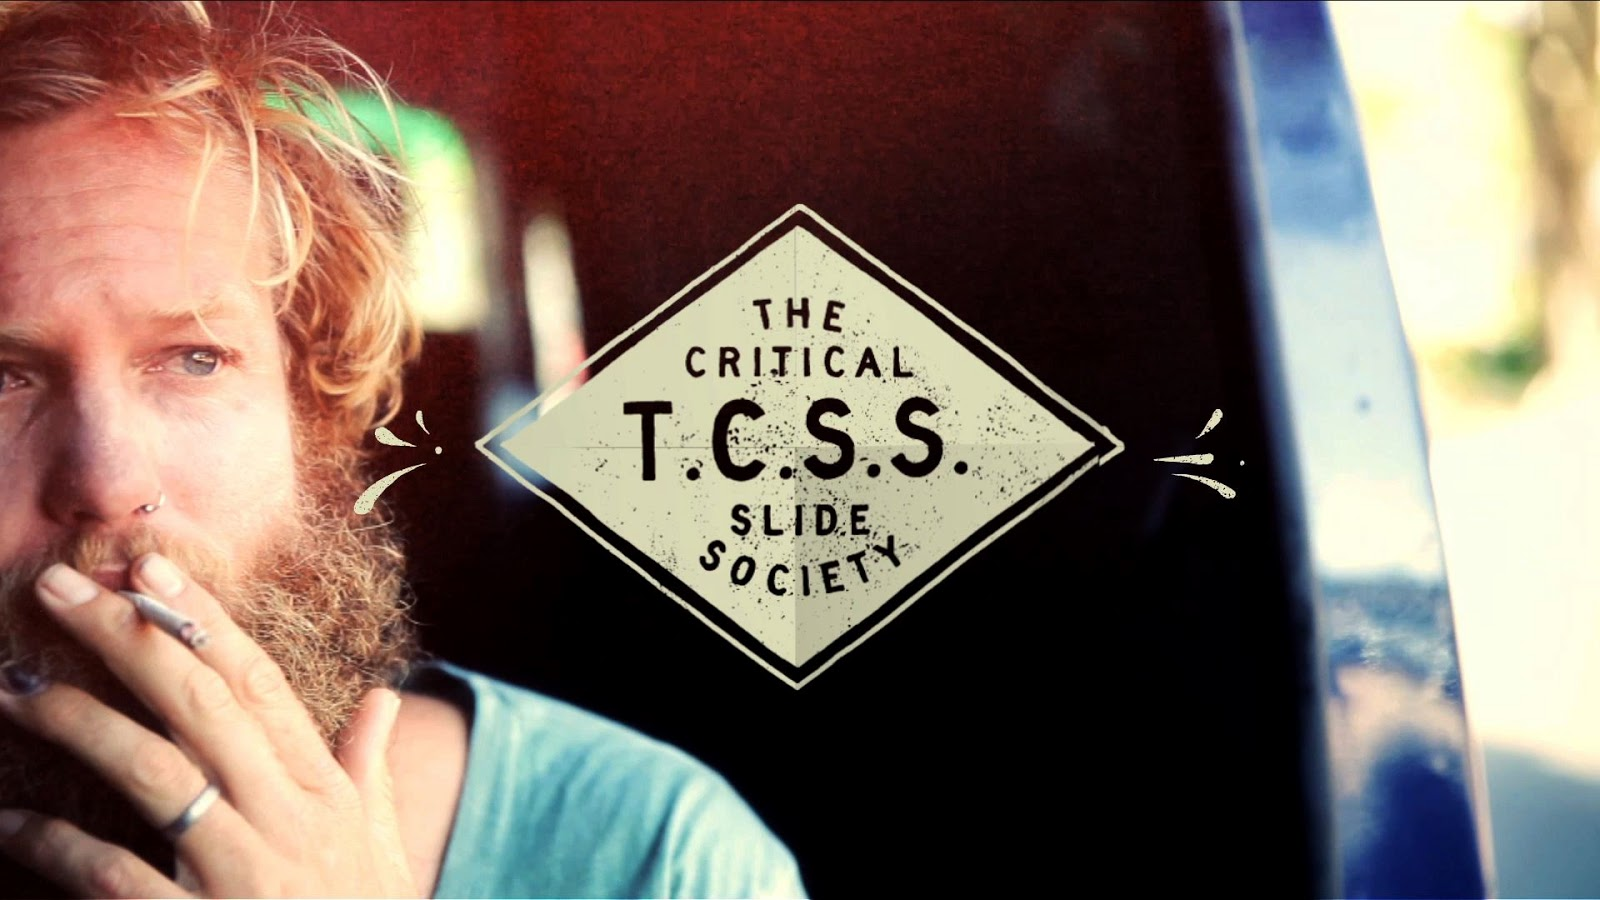 T.C.S.S. Presents: A Doc-umentary from Nathan Oldfield on Vimeo.